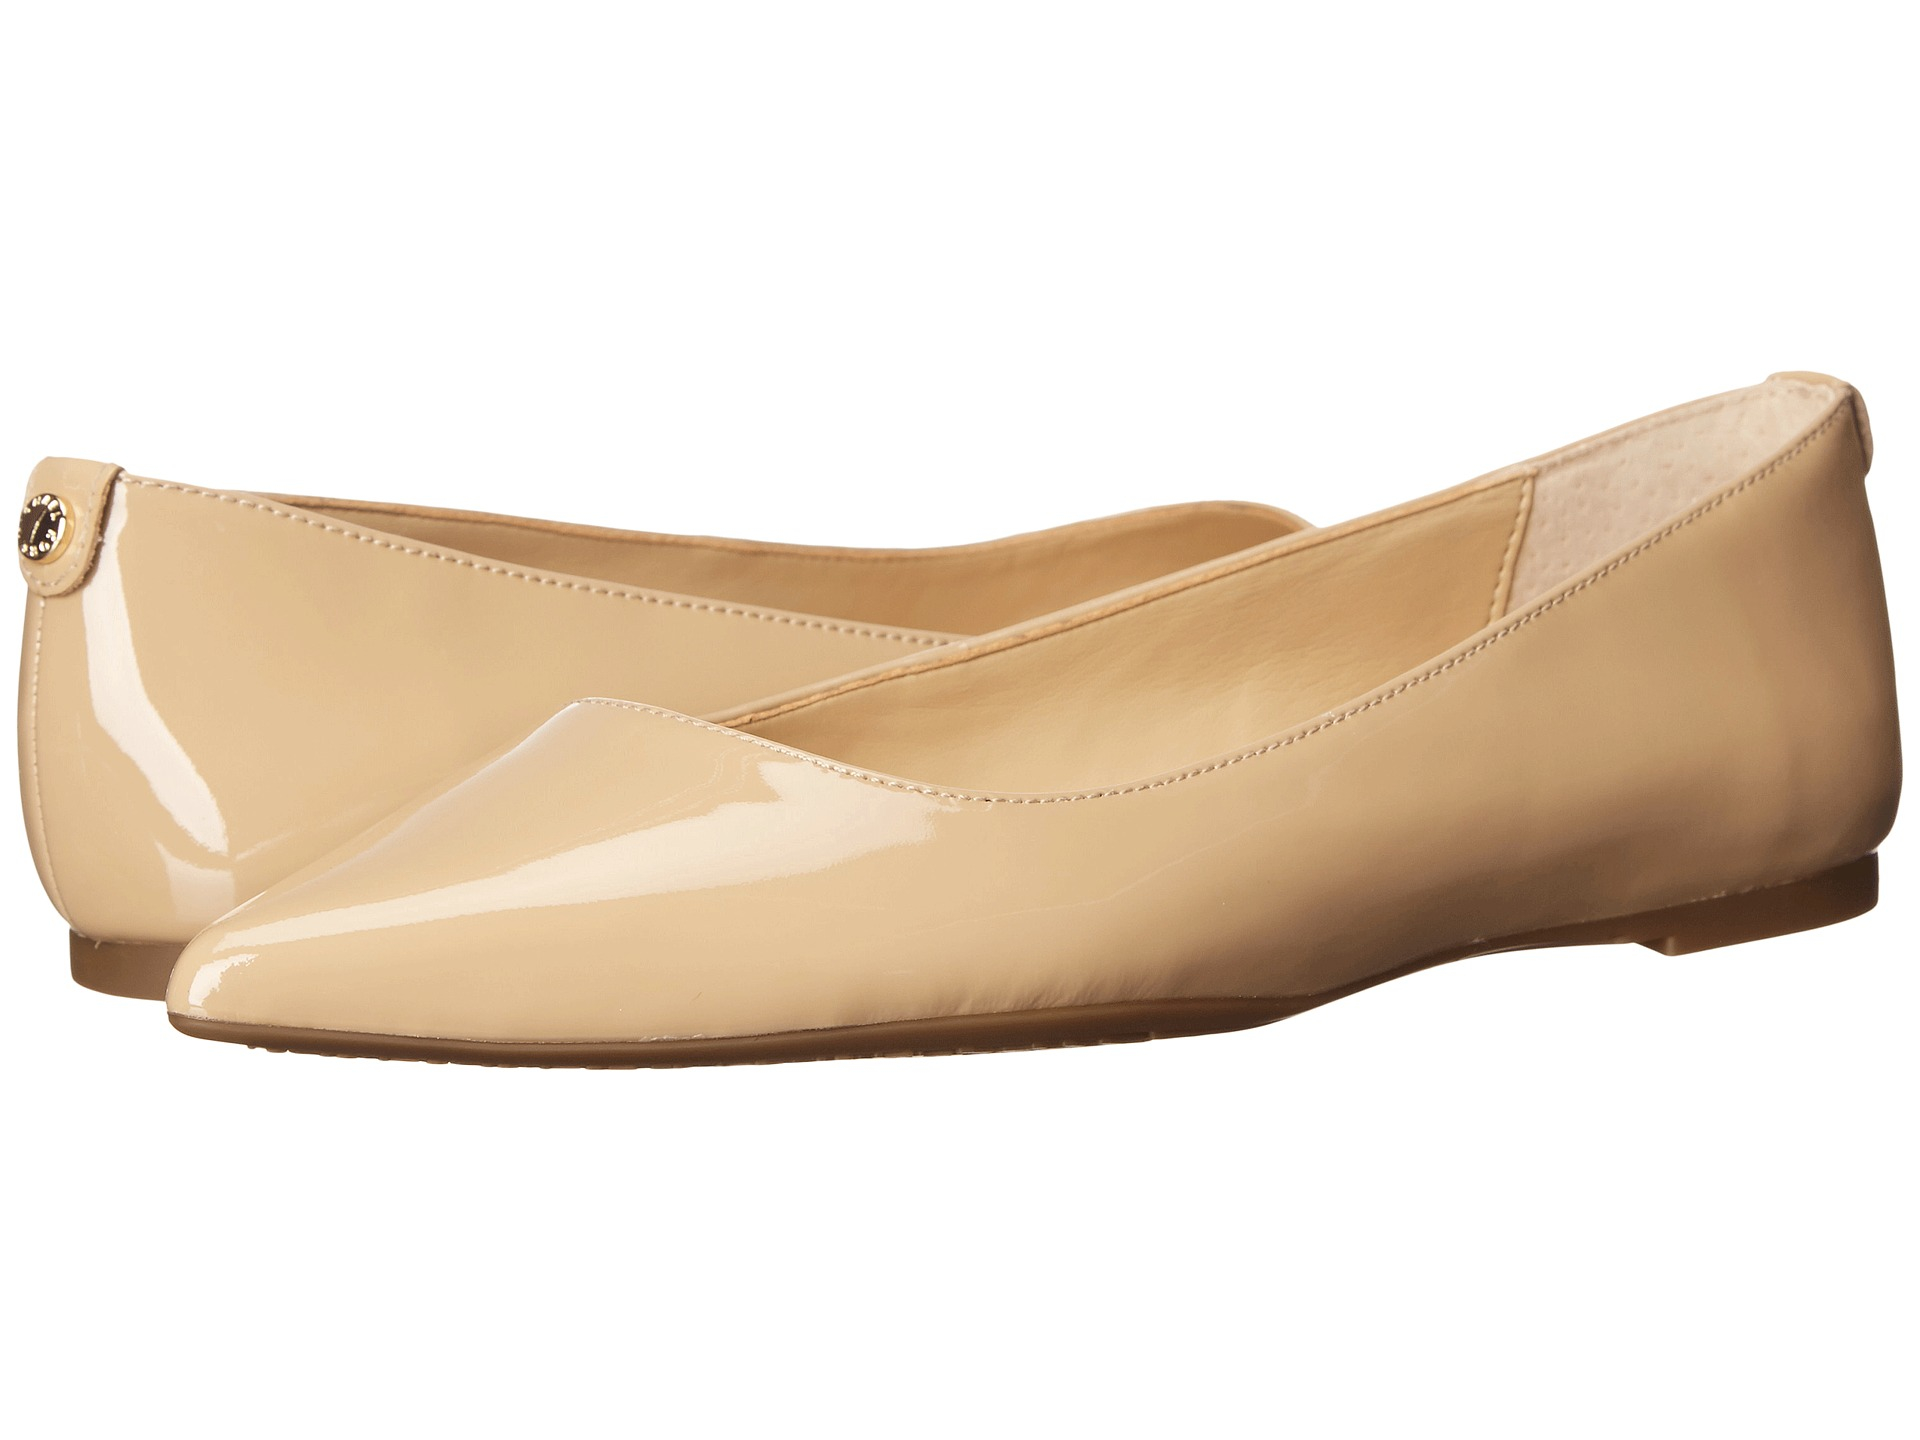 922a55697fe Lyst - MICHAEL Michael Kors Arianna Flat in Natural